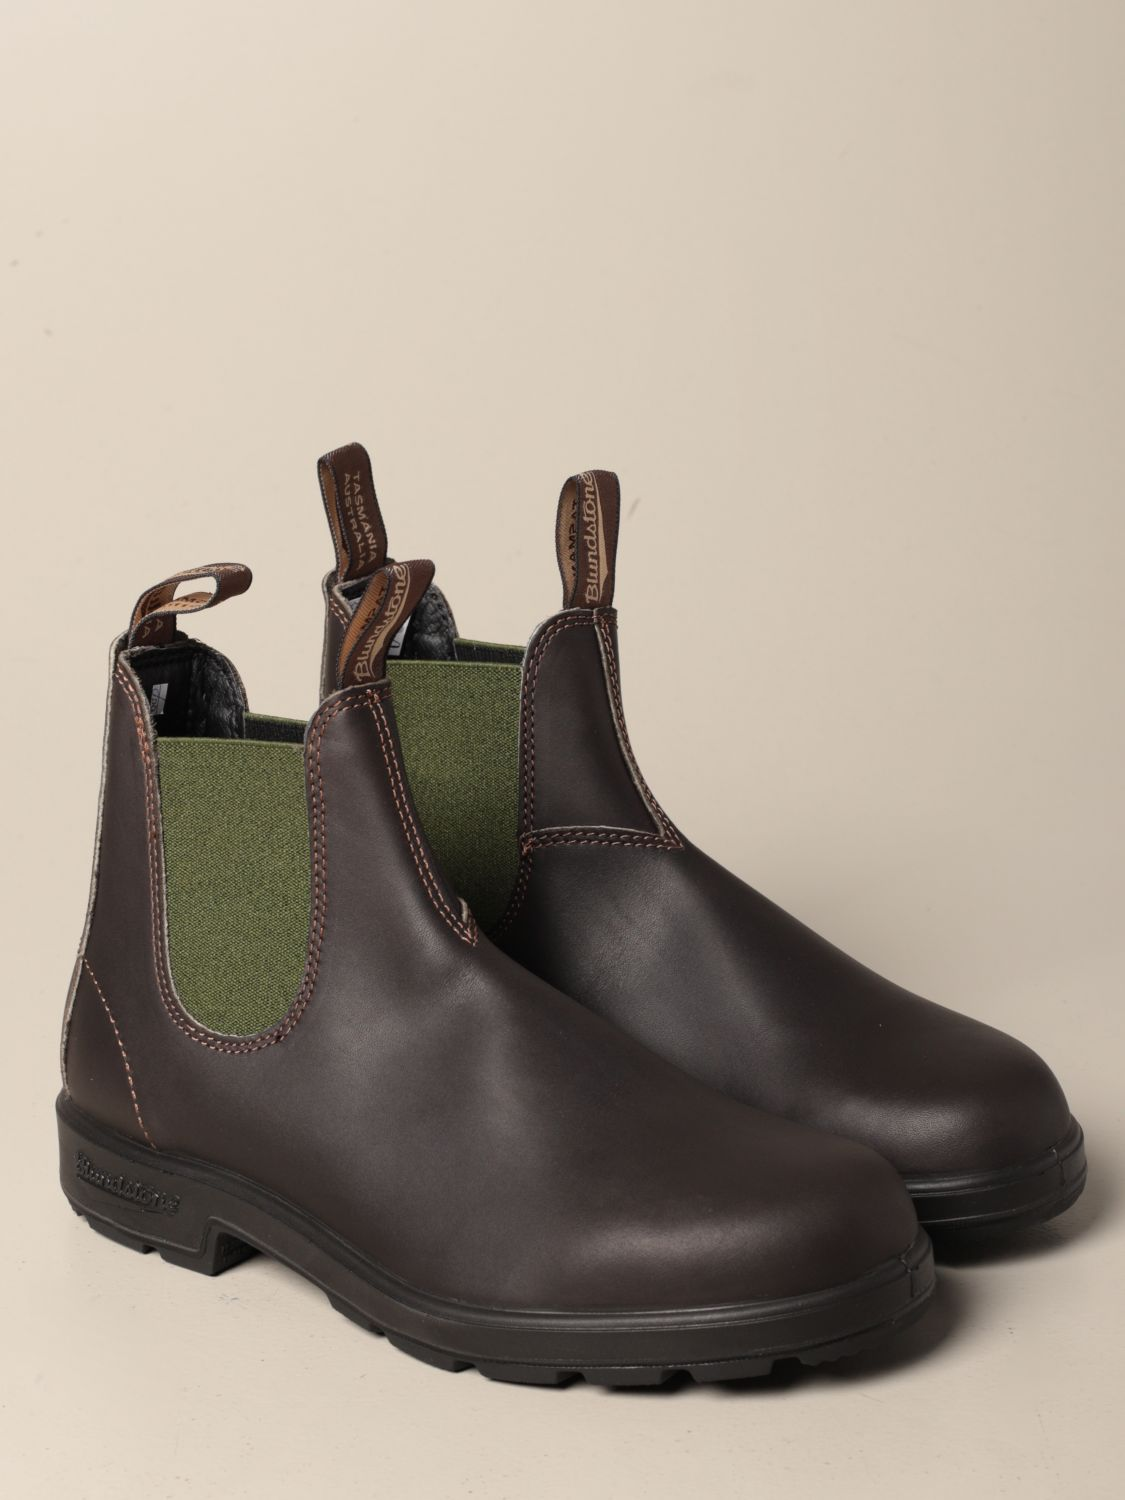 Boots Blundstone: Boots men Blundstone olive 2